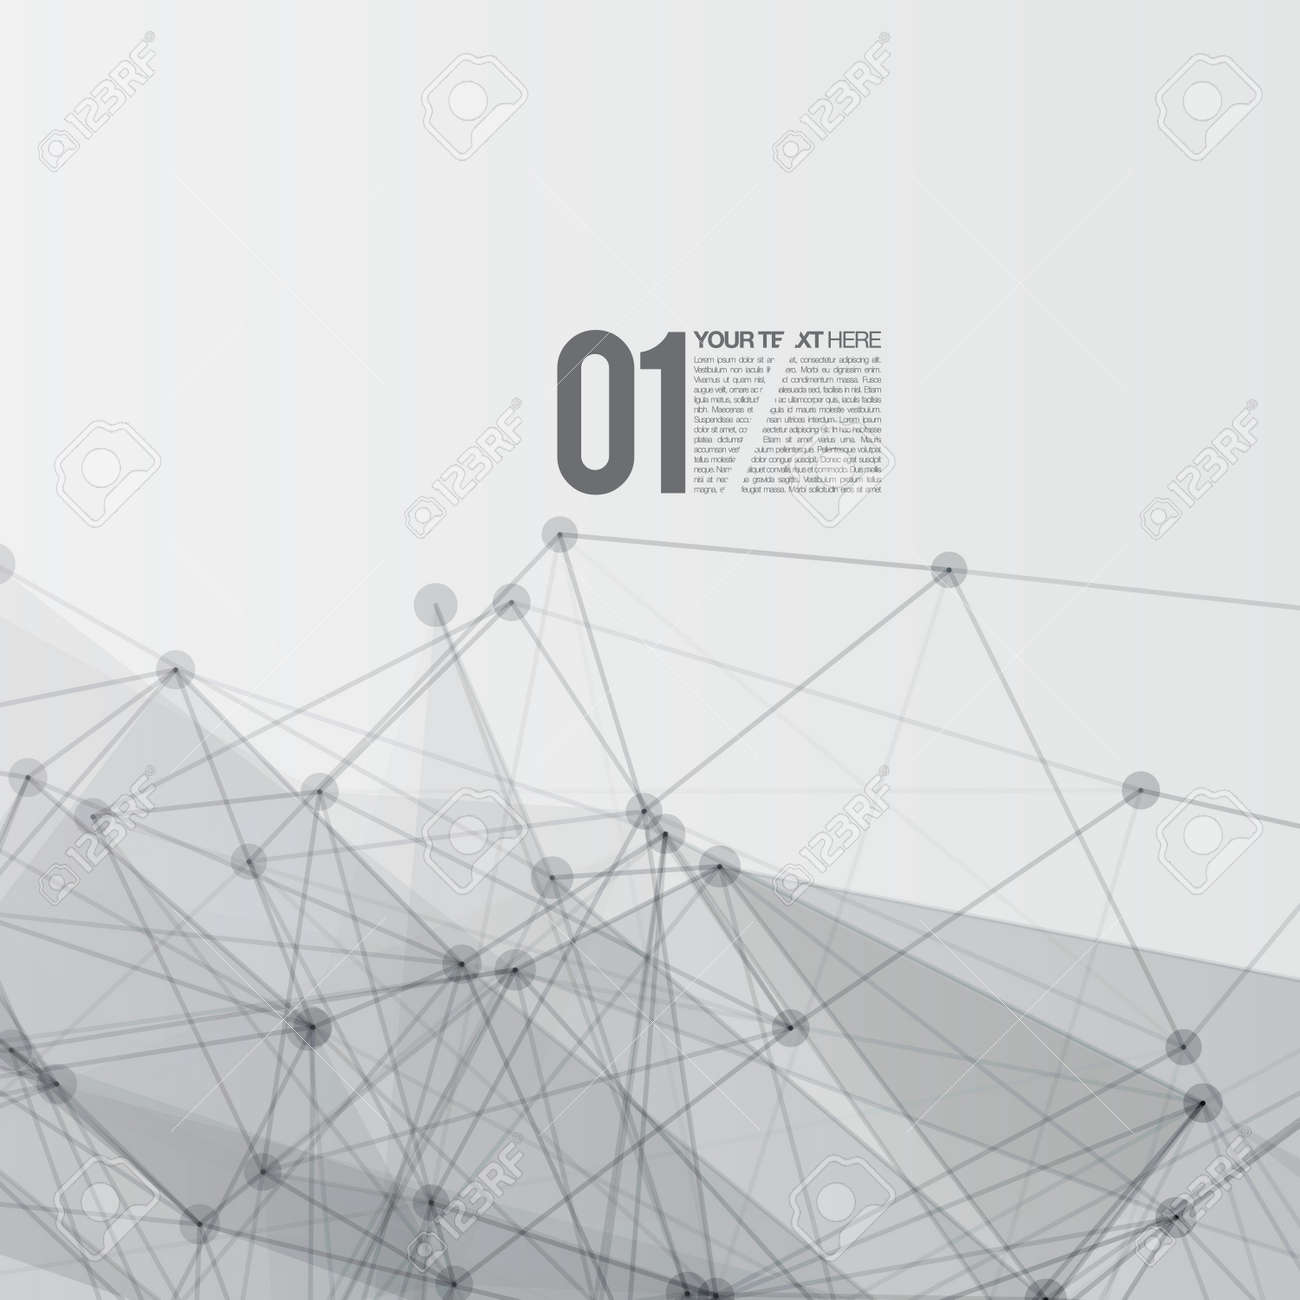 3D Black and White Abstract Mesh Background with Circles, Lines and Shapes Stock Vector - 19897668